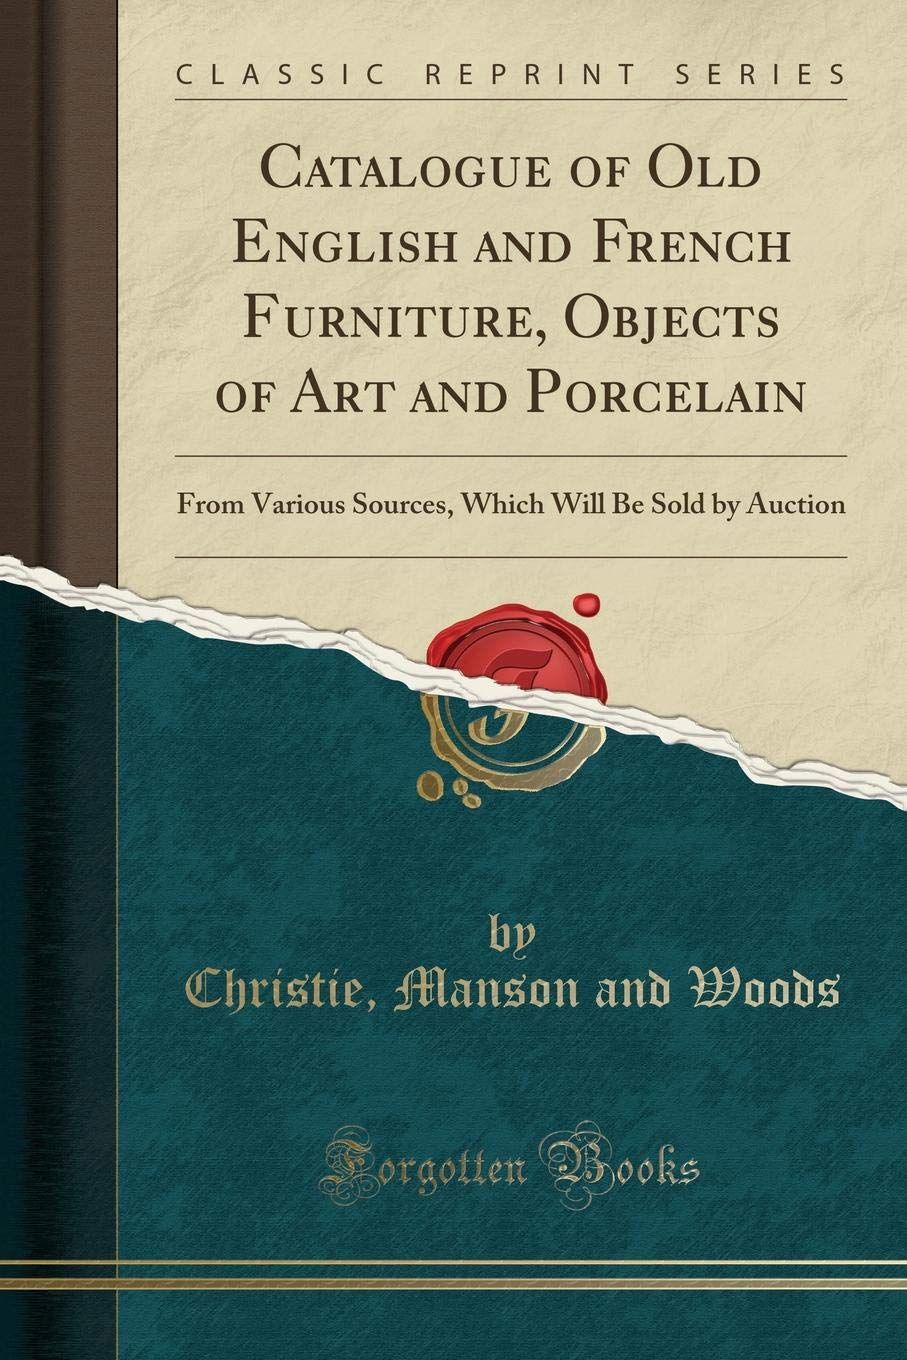 Catalogue of Old English and French Furniture, Objects of Art and Porcelain: From Various Sources, Which Will Be Sold by Auction (Classic Reprint) pdf epub